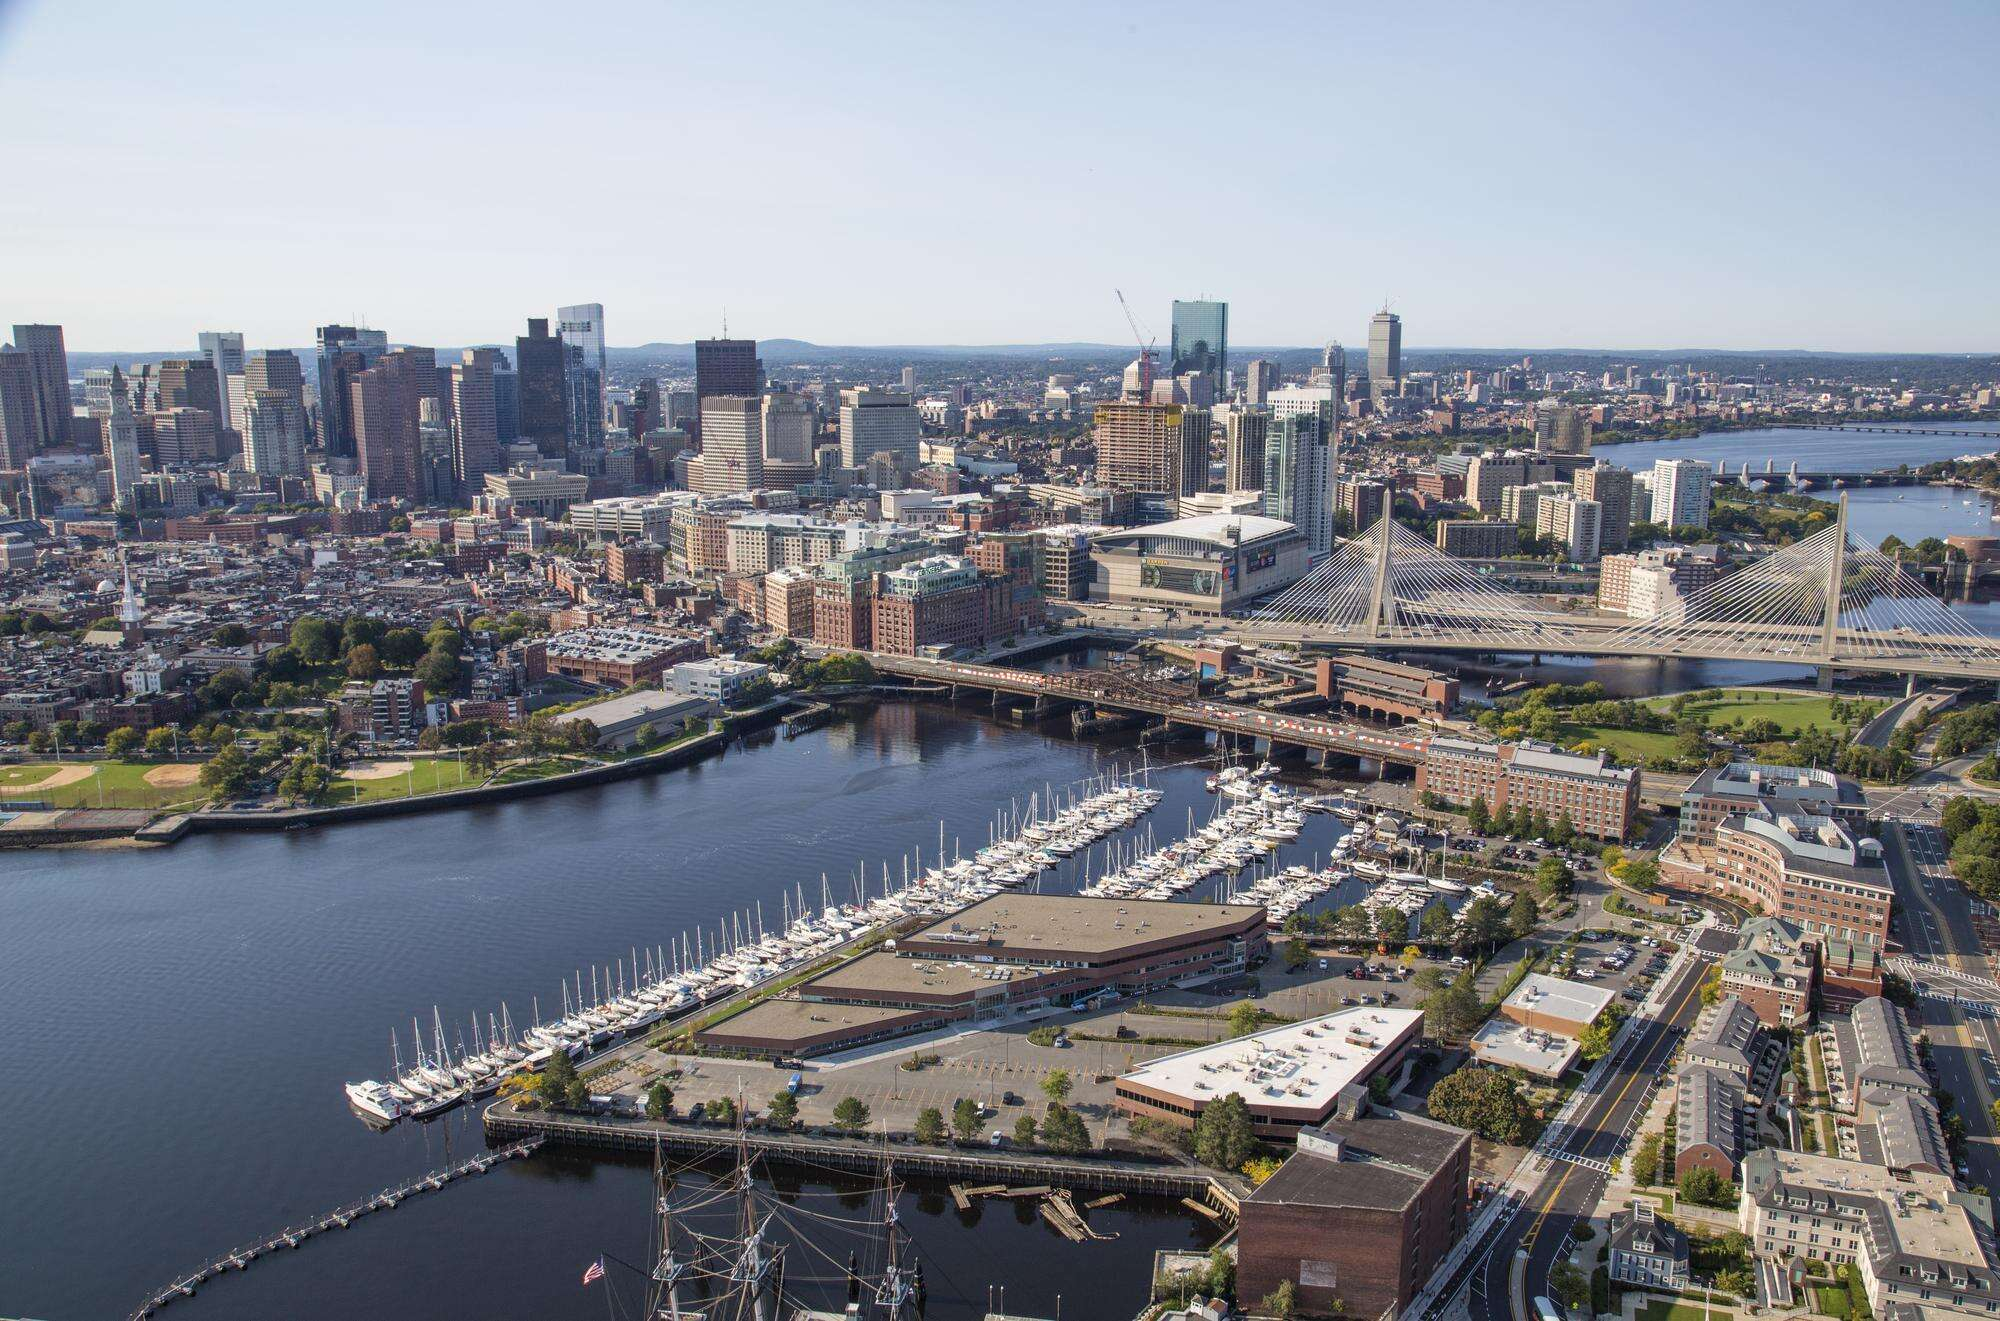 Aerial of Constitution Wharf building, marina, and river, with Boston skyline in background